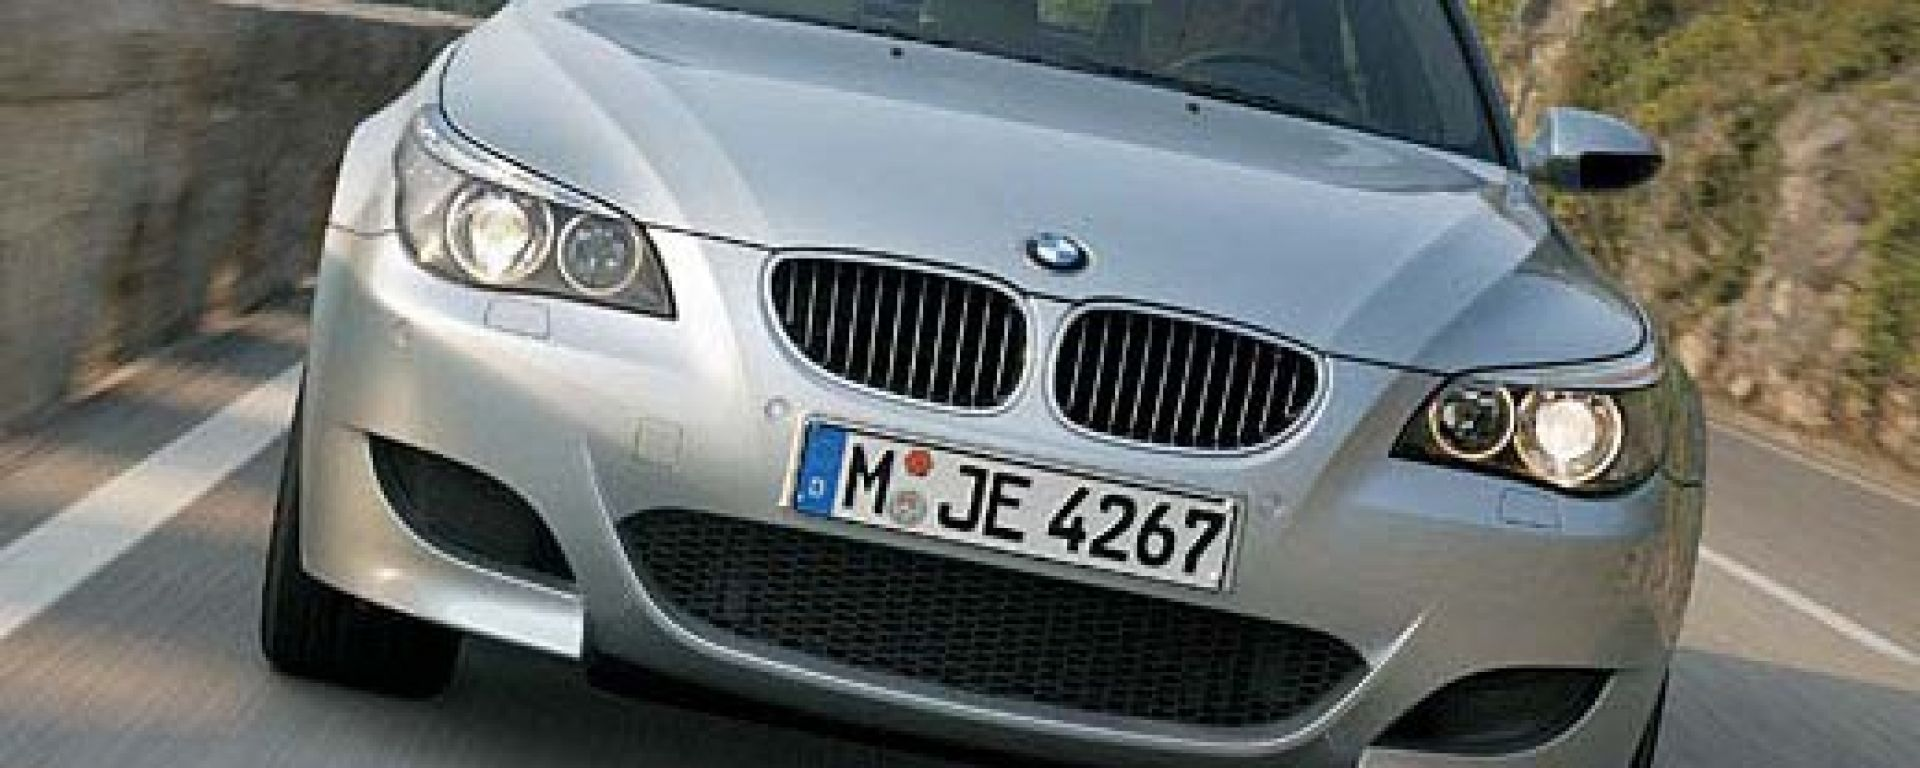 Bmw M5 2005: prezzi e optional